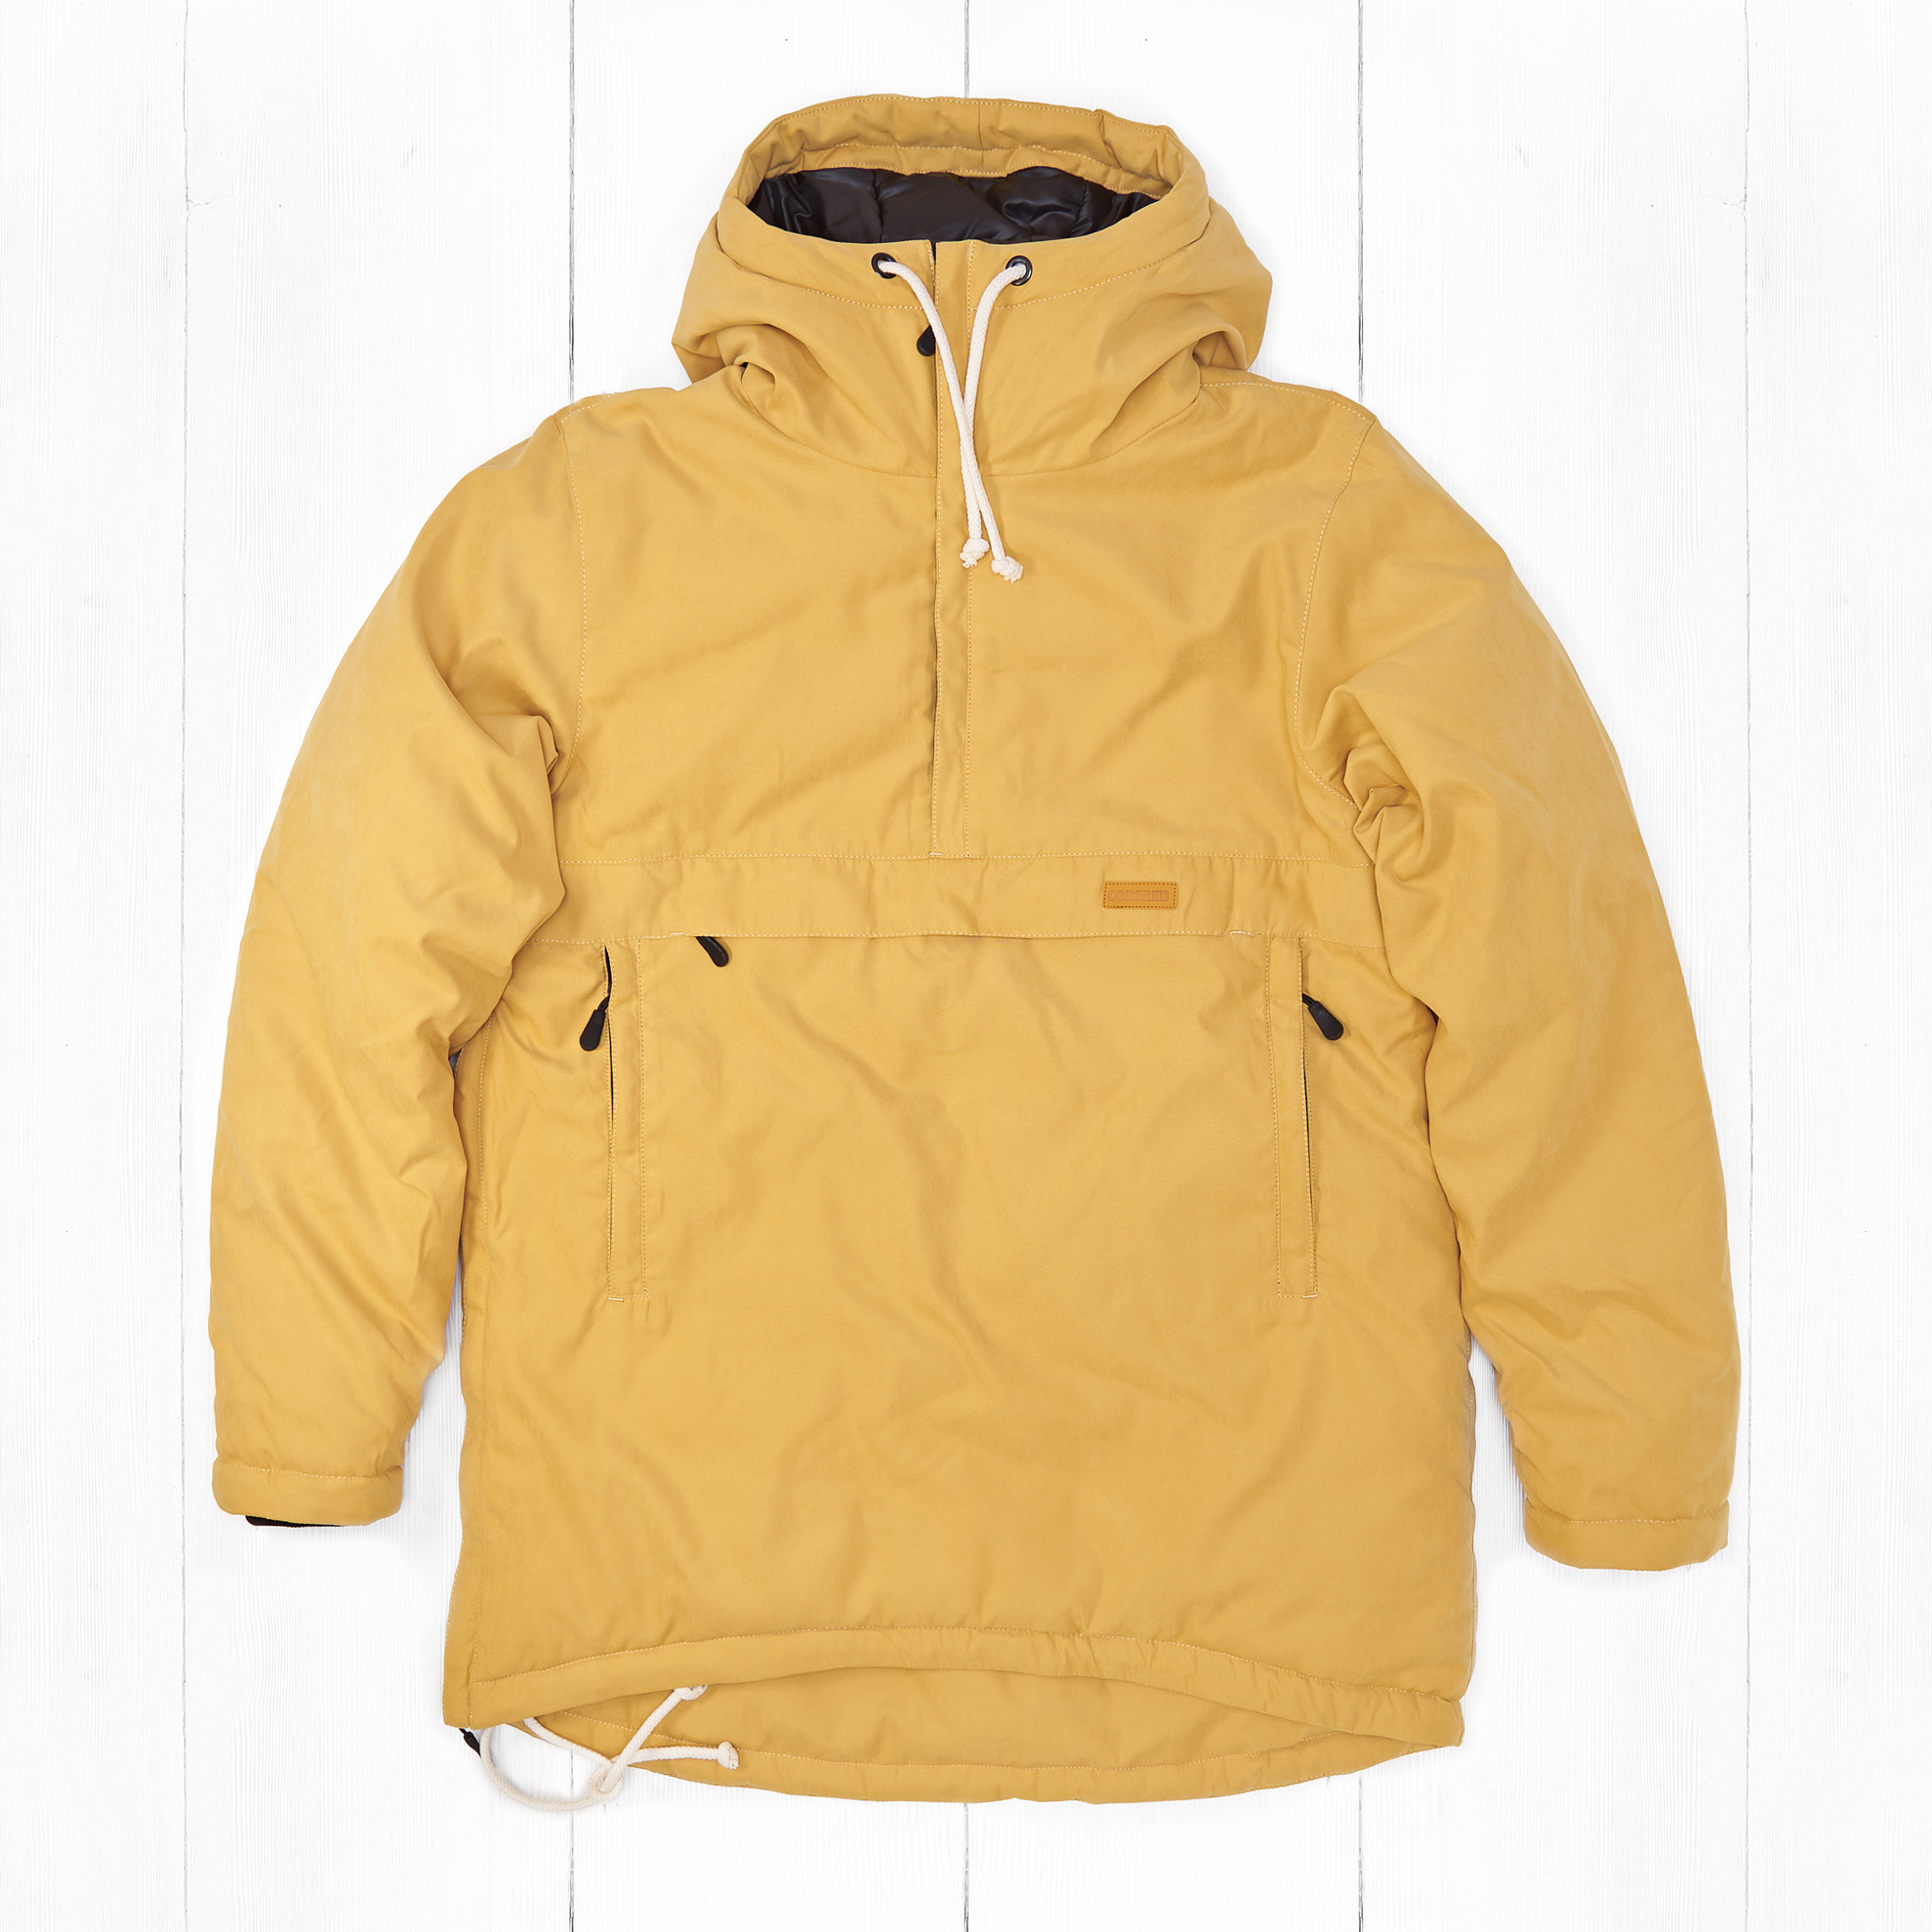 Анорак CODERED CHROME 3 Microfiber Mustard